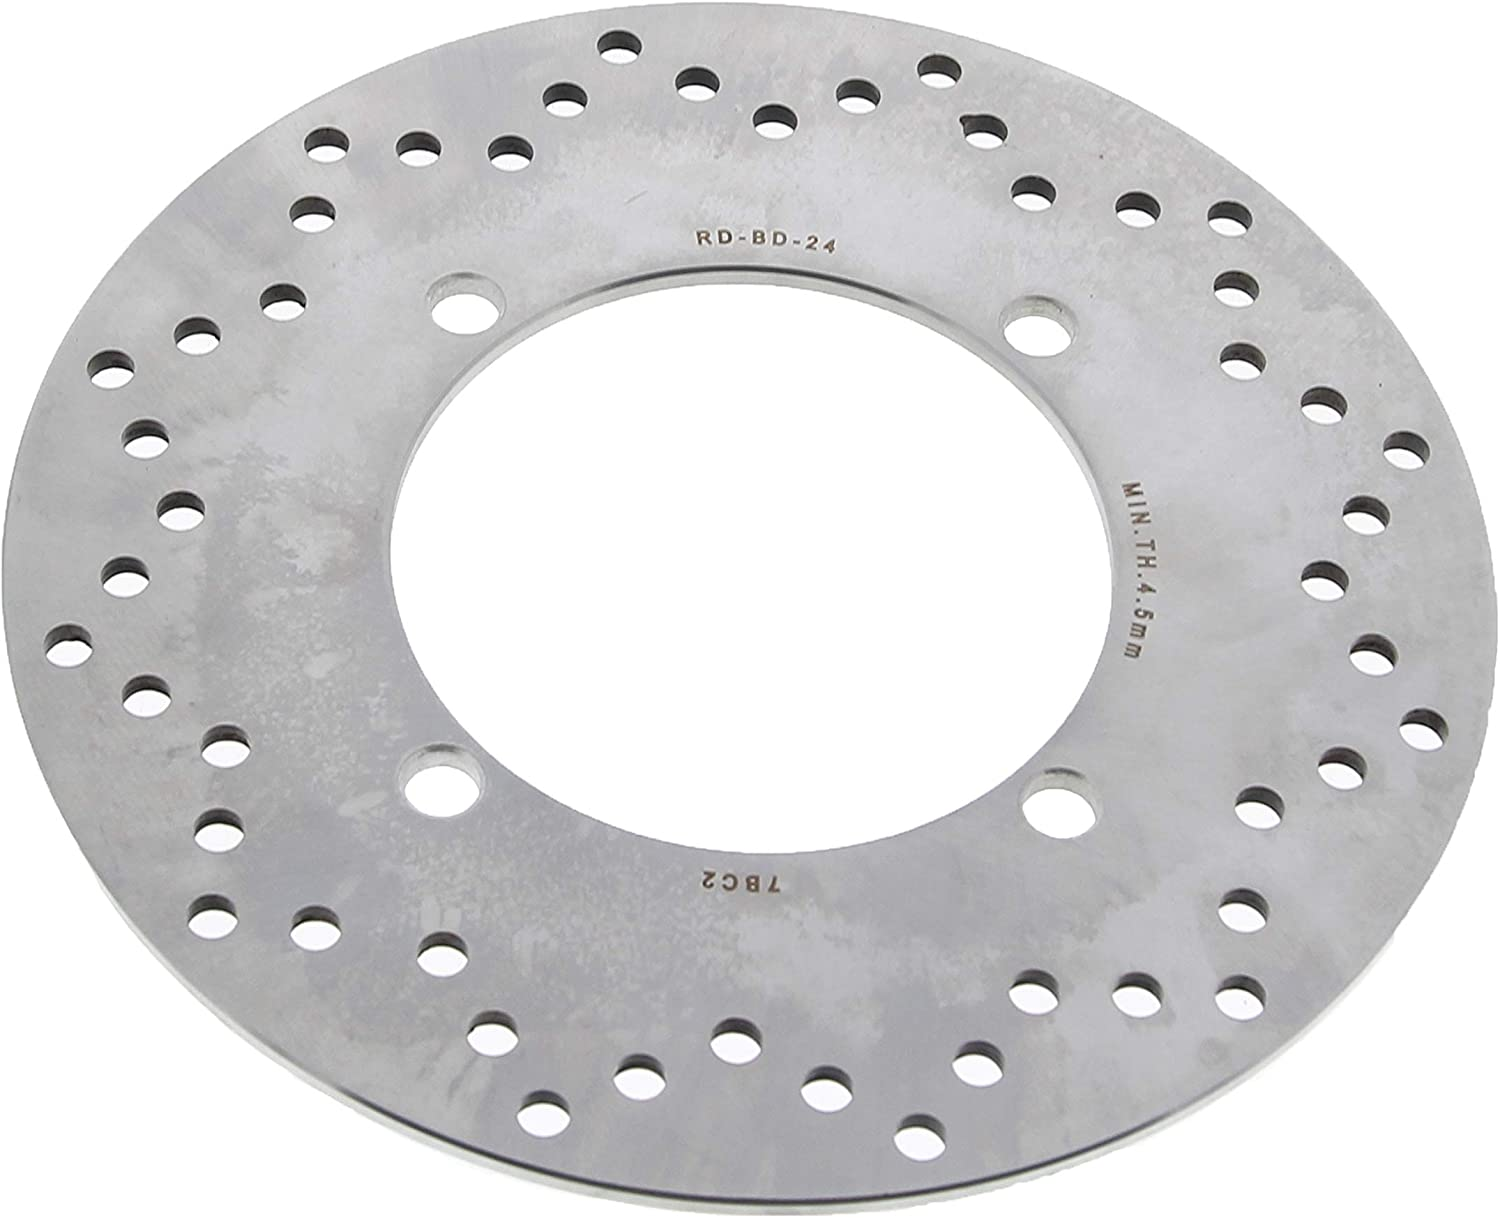 2008 2009 Polaris Ranger 700 Crew Rear Brake Rotor Brake Disc